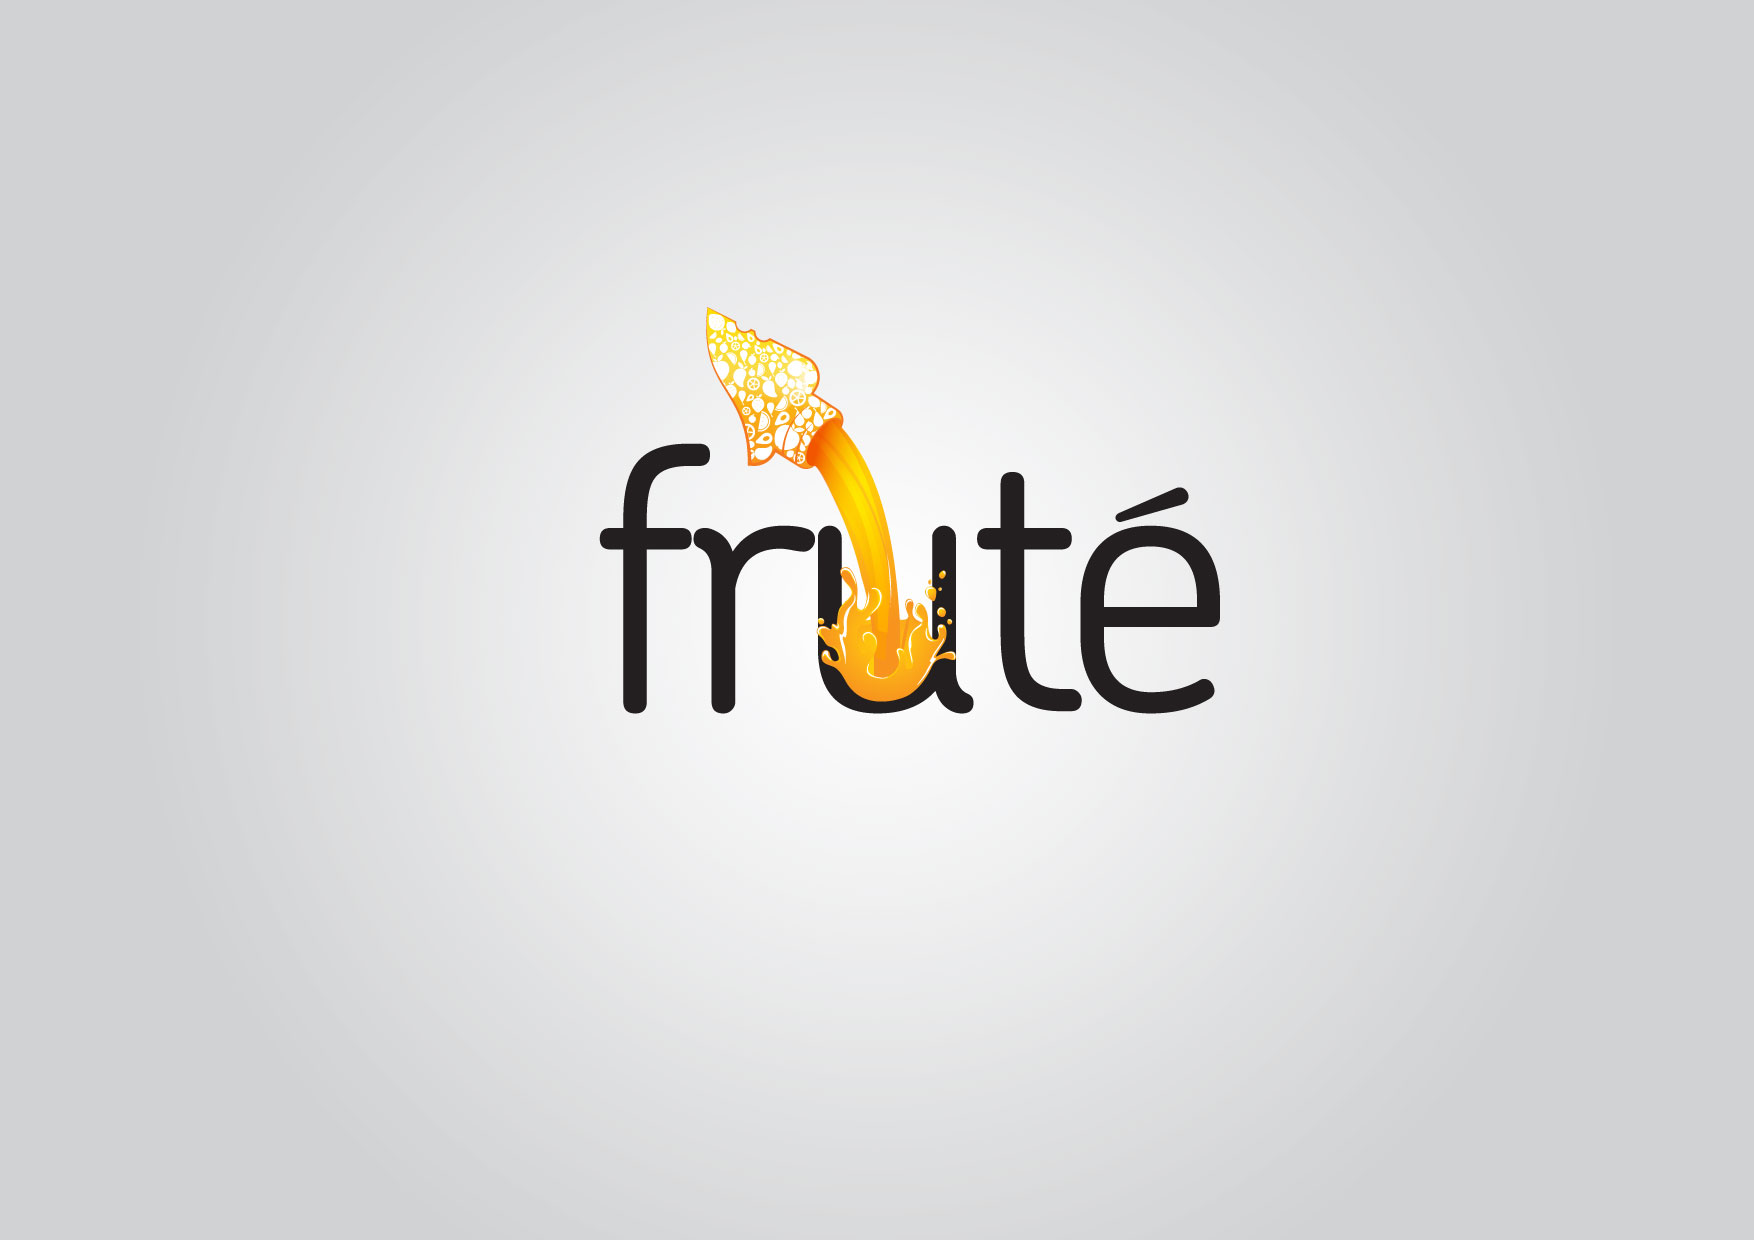 Logo Design by Dit L Pambudi - Entry No. 152 in the Logo Design Contest Imaginative Logo Design for Fruté.